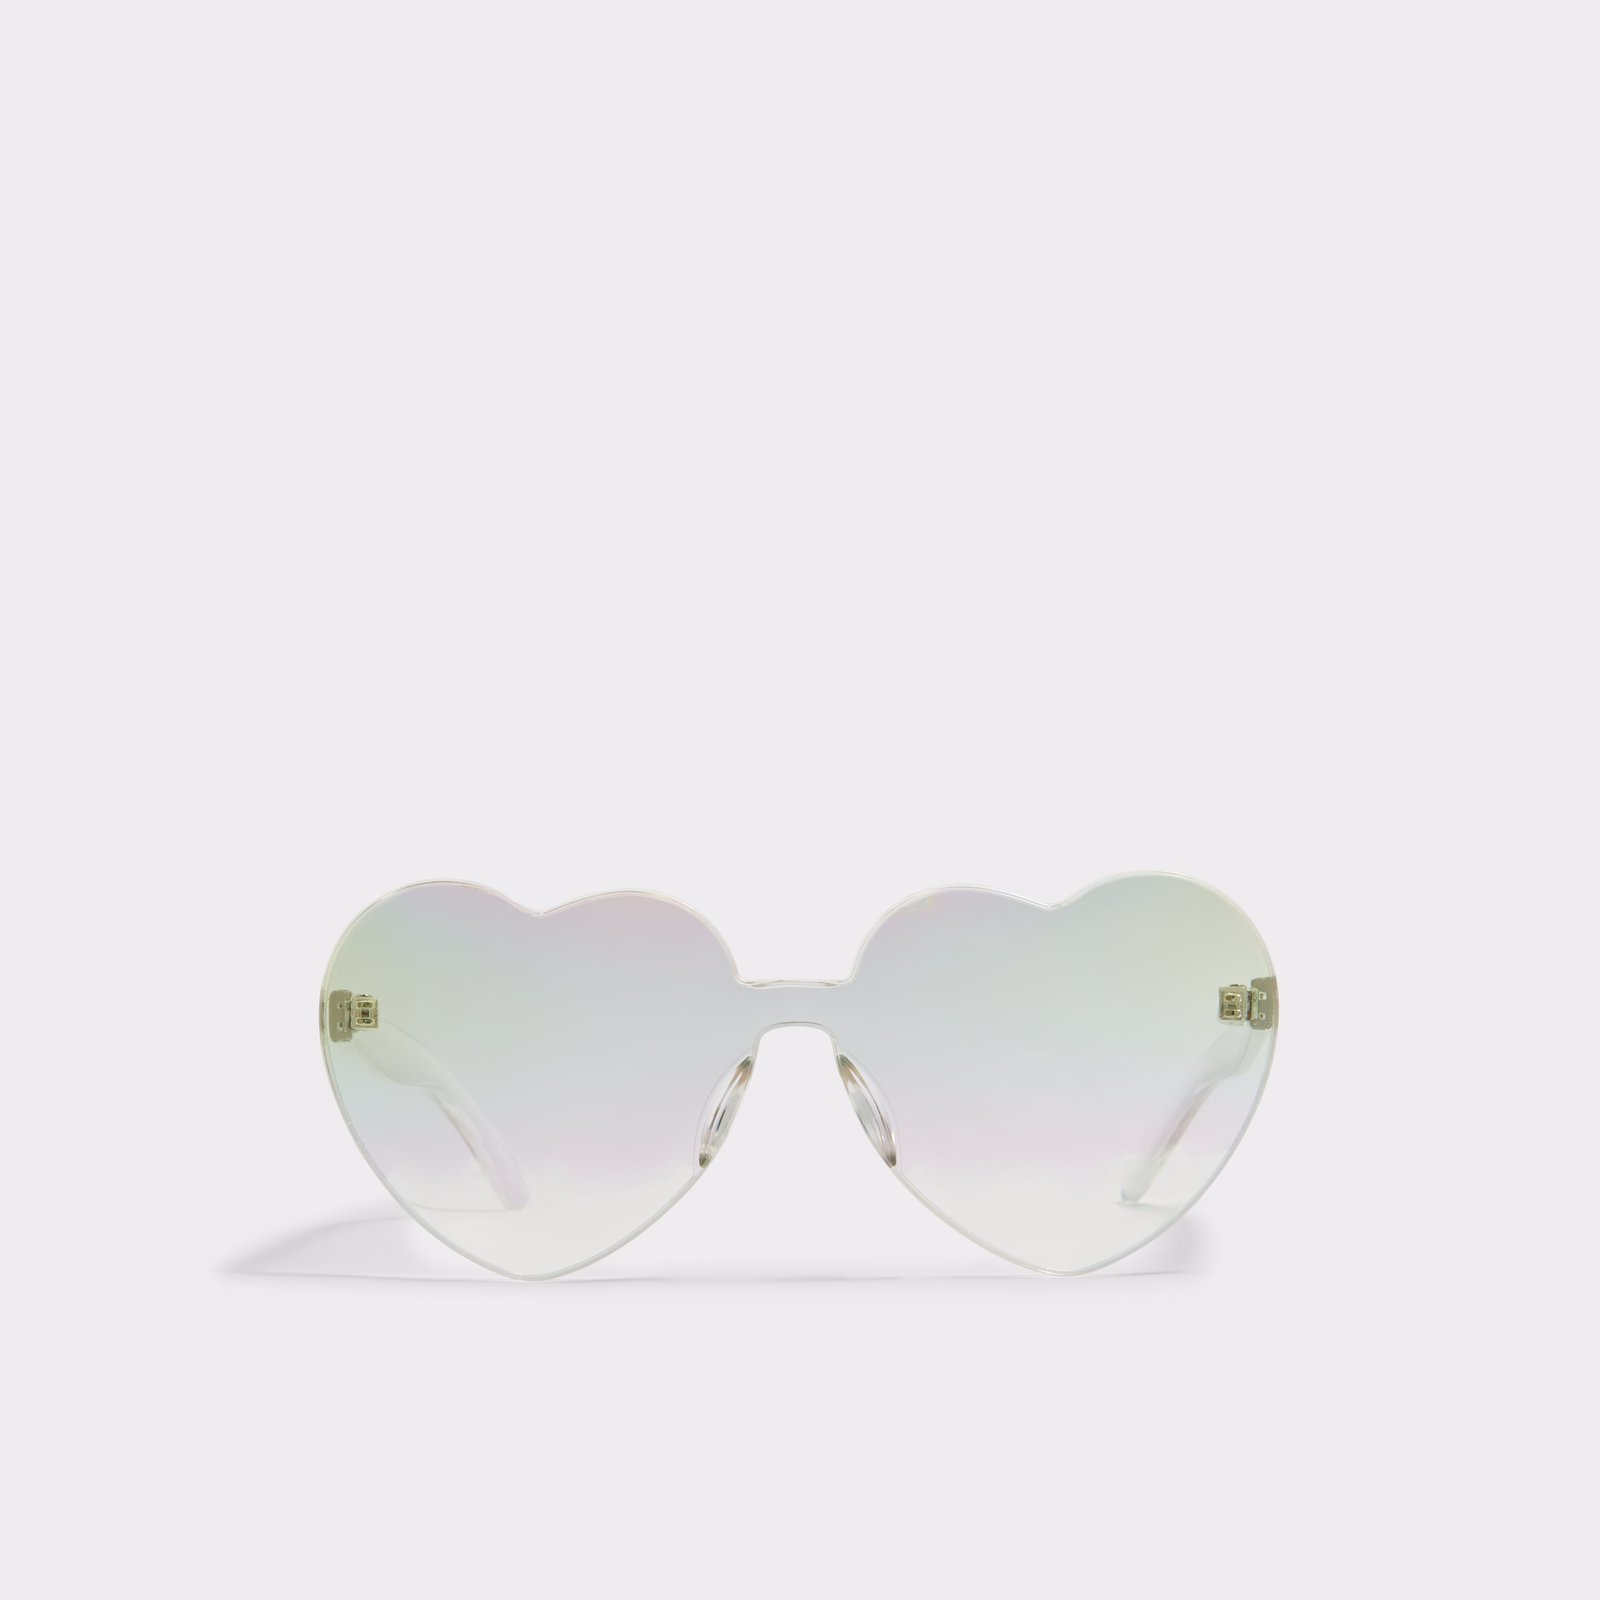 Aldo heart-shaped sunglasses